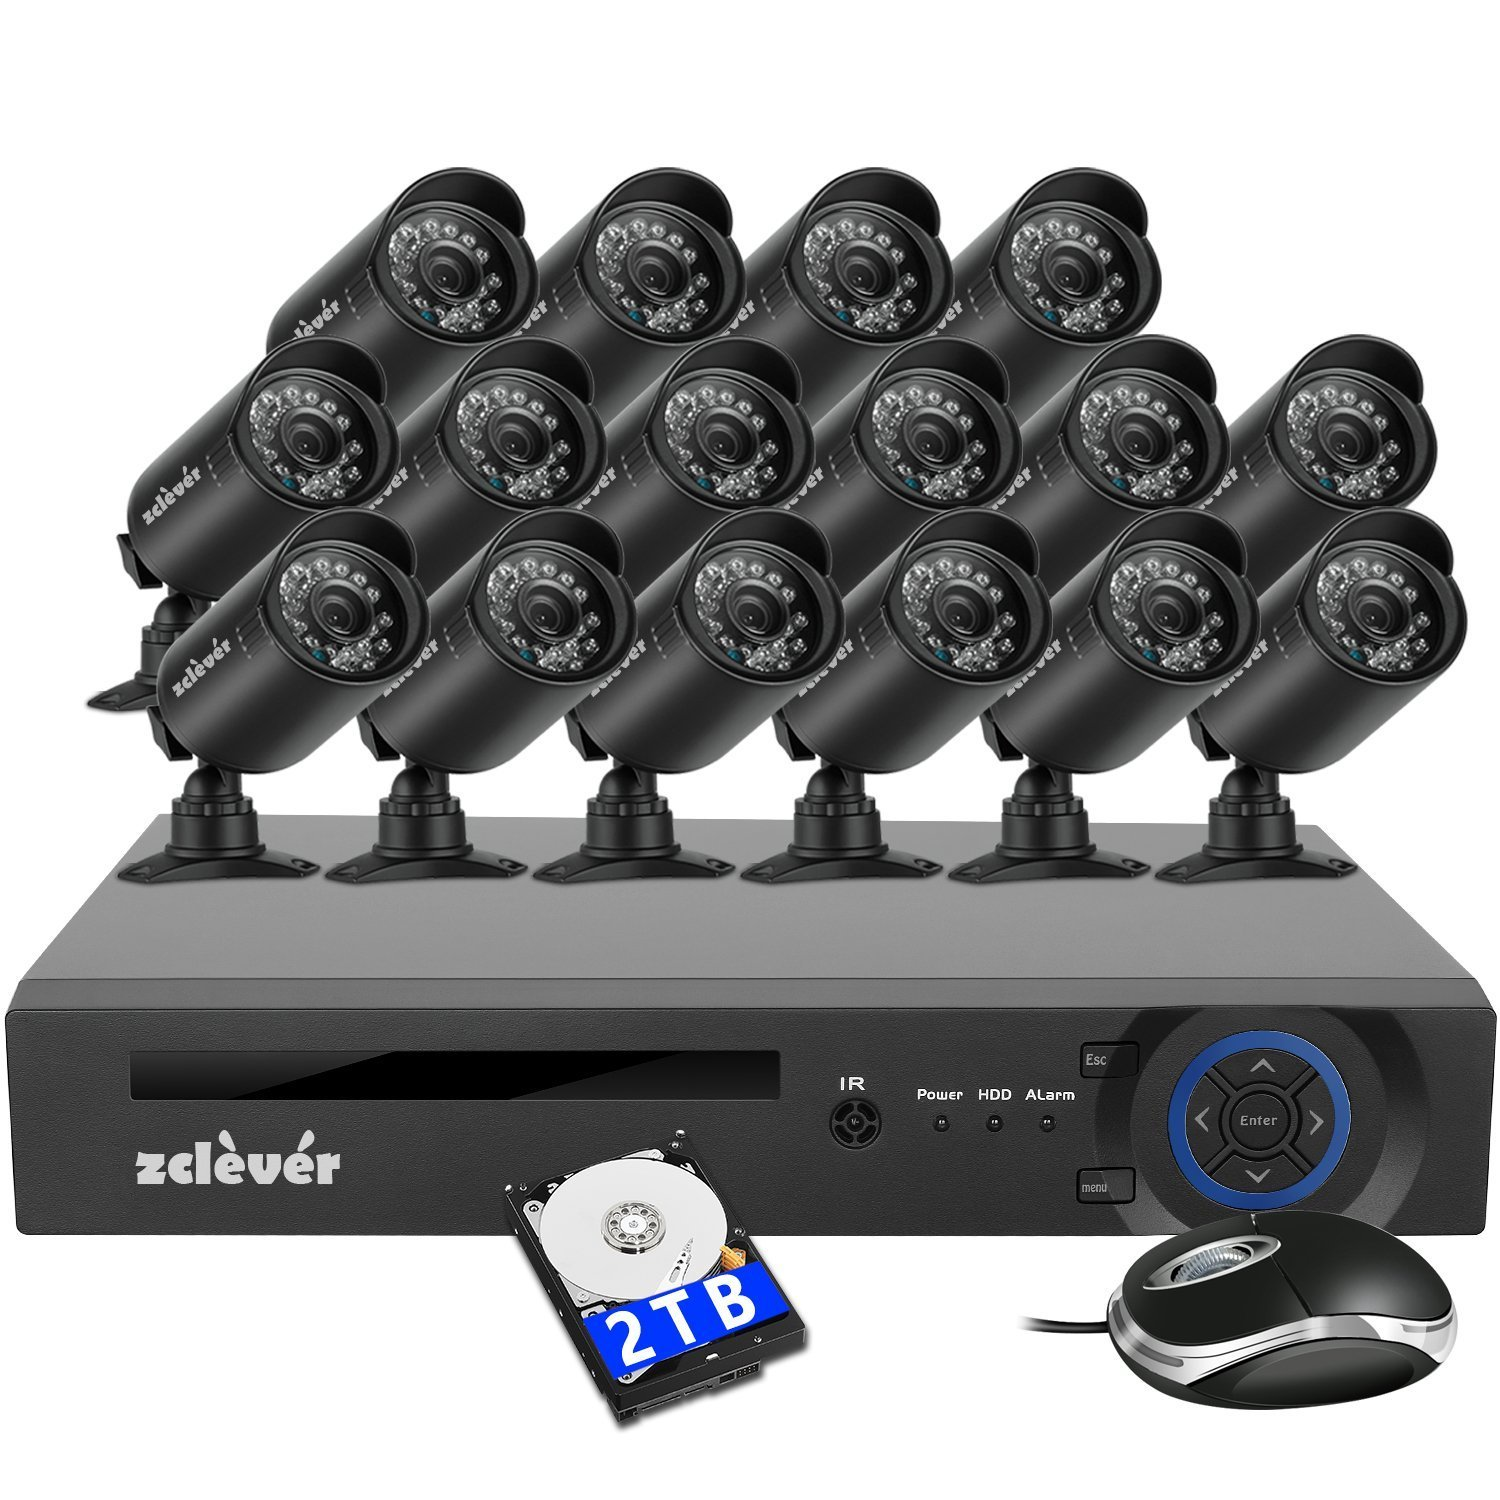 Zclever 16 Channel 1080N HD 1200TVL Security Cameras System with 16 Cameras 2TB Hard Drive Included by Zclever